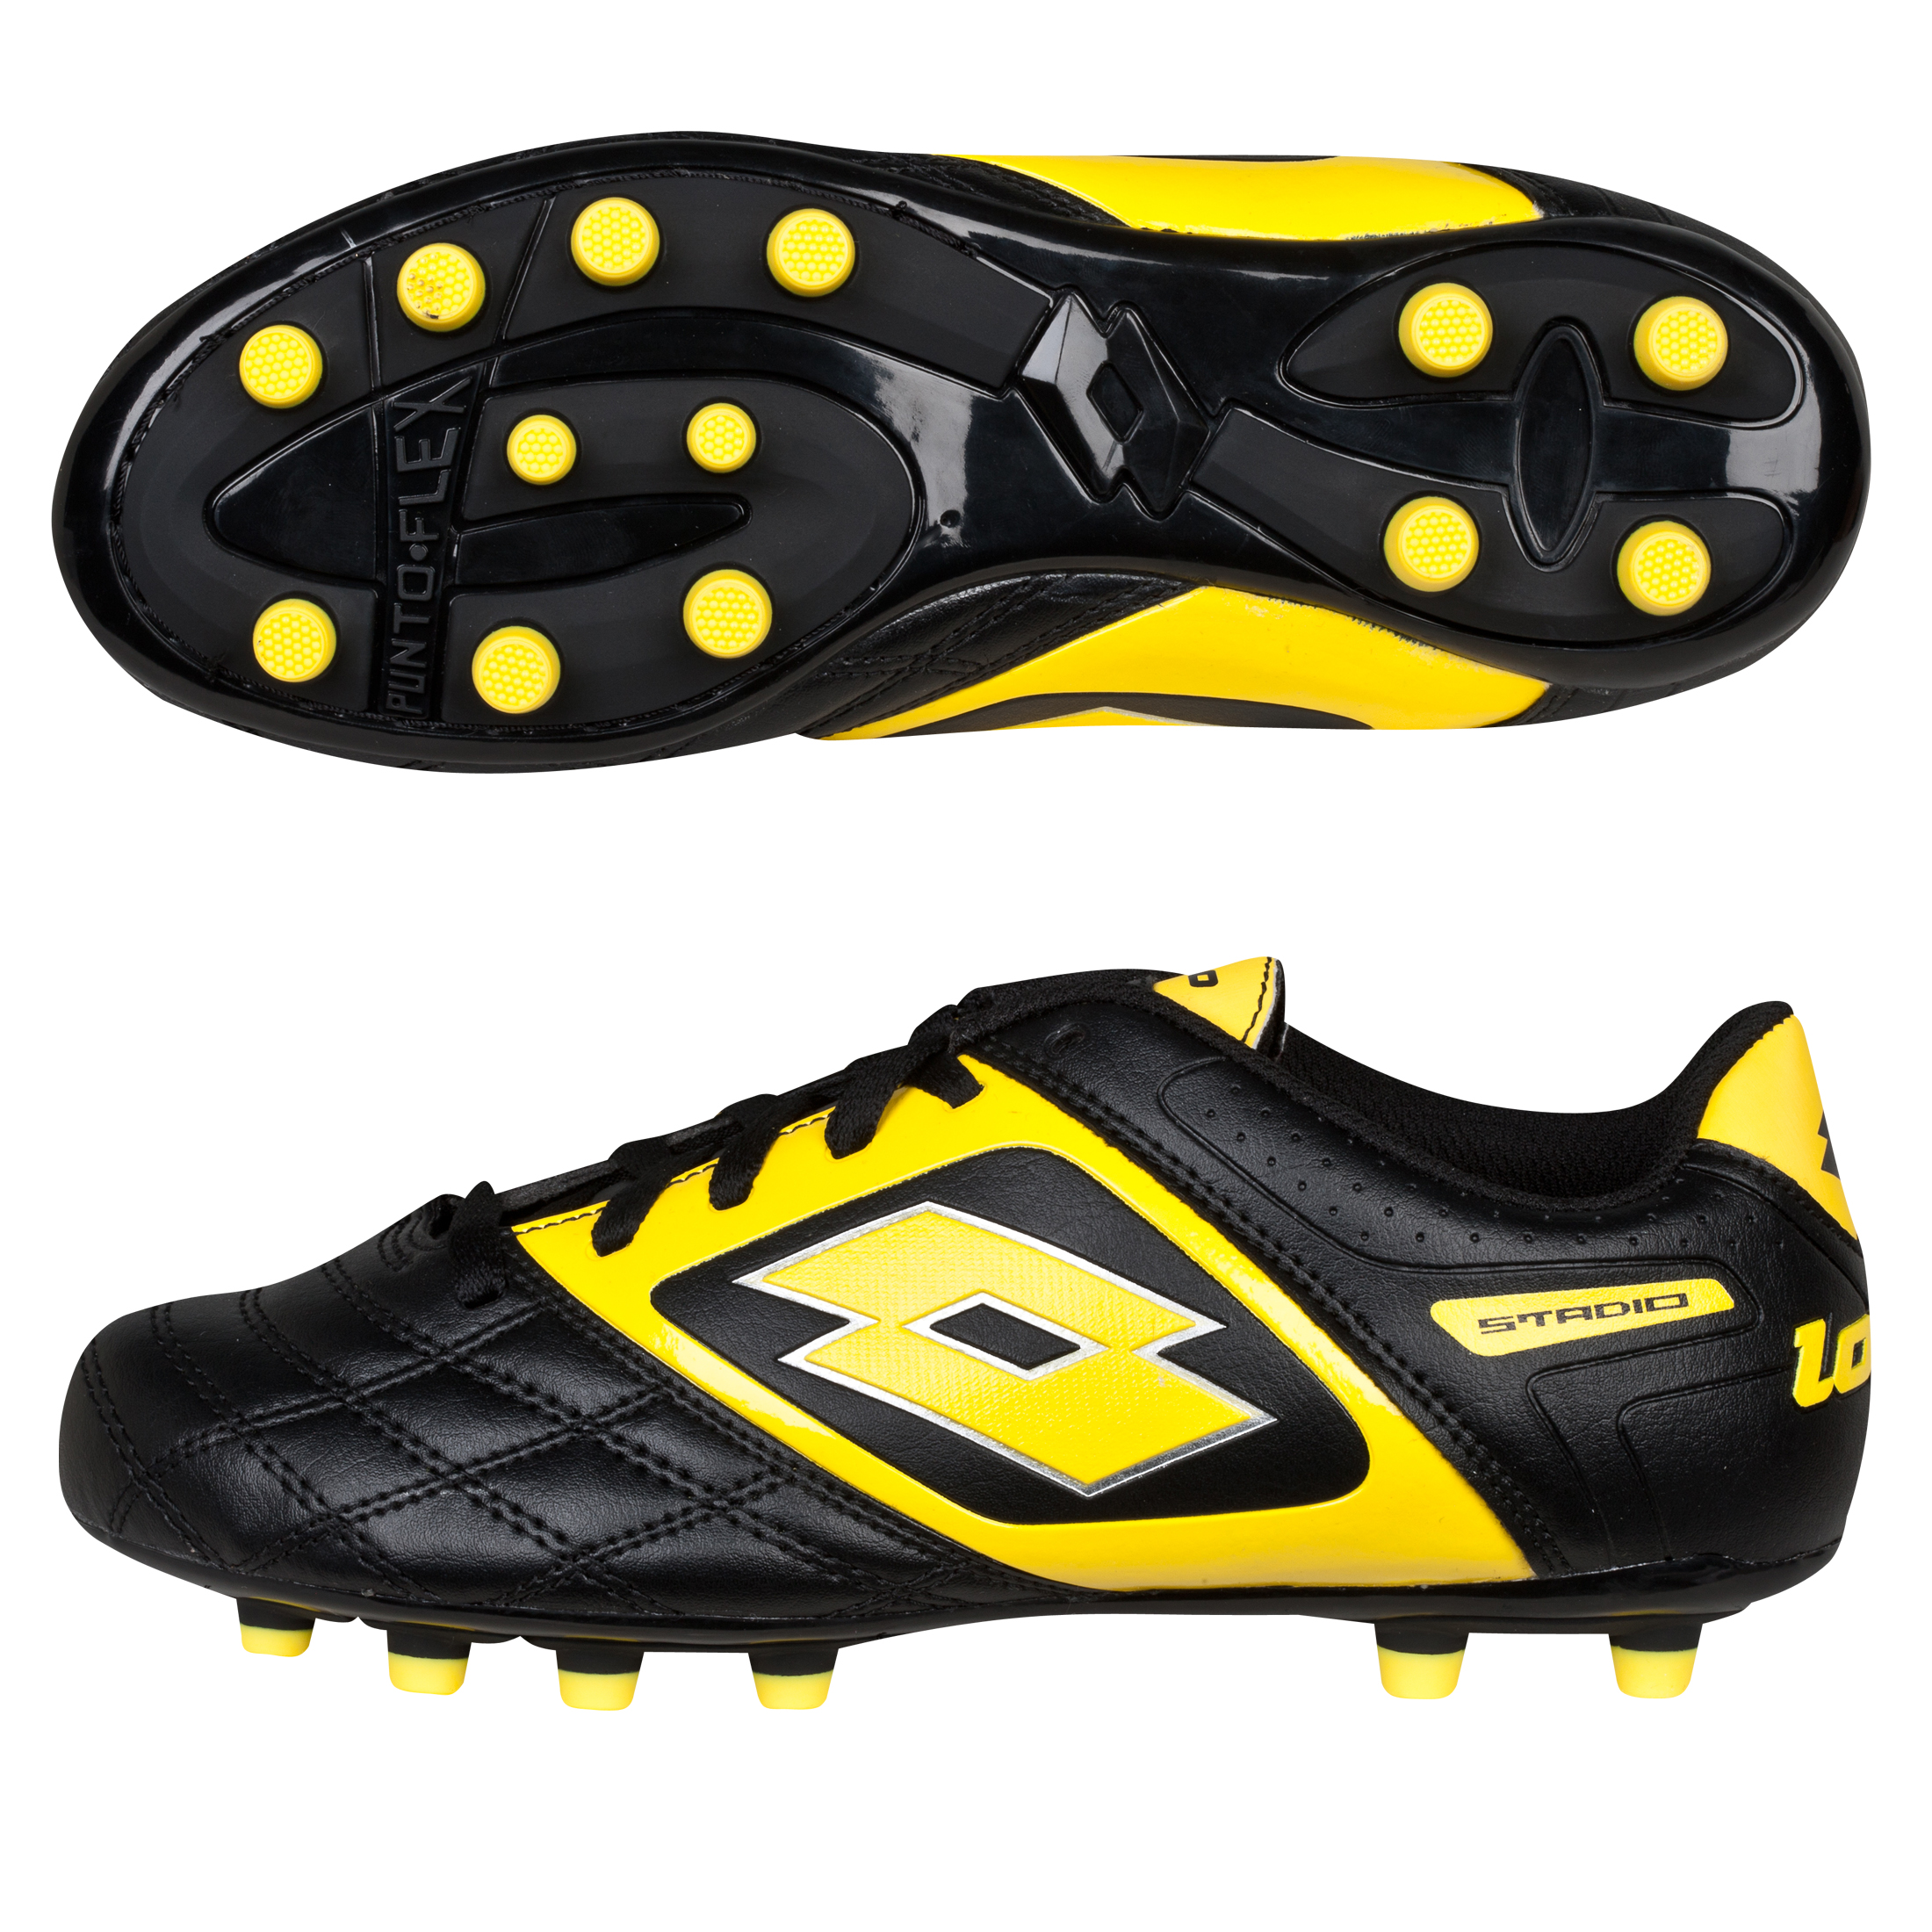 Lotto Stadio Potenza II 700 FG Black/Super Ylw Kids